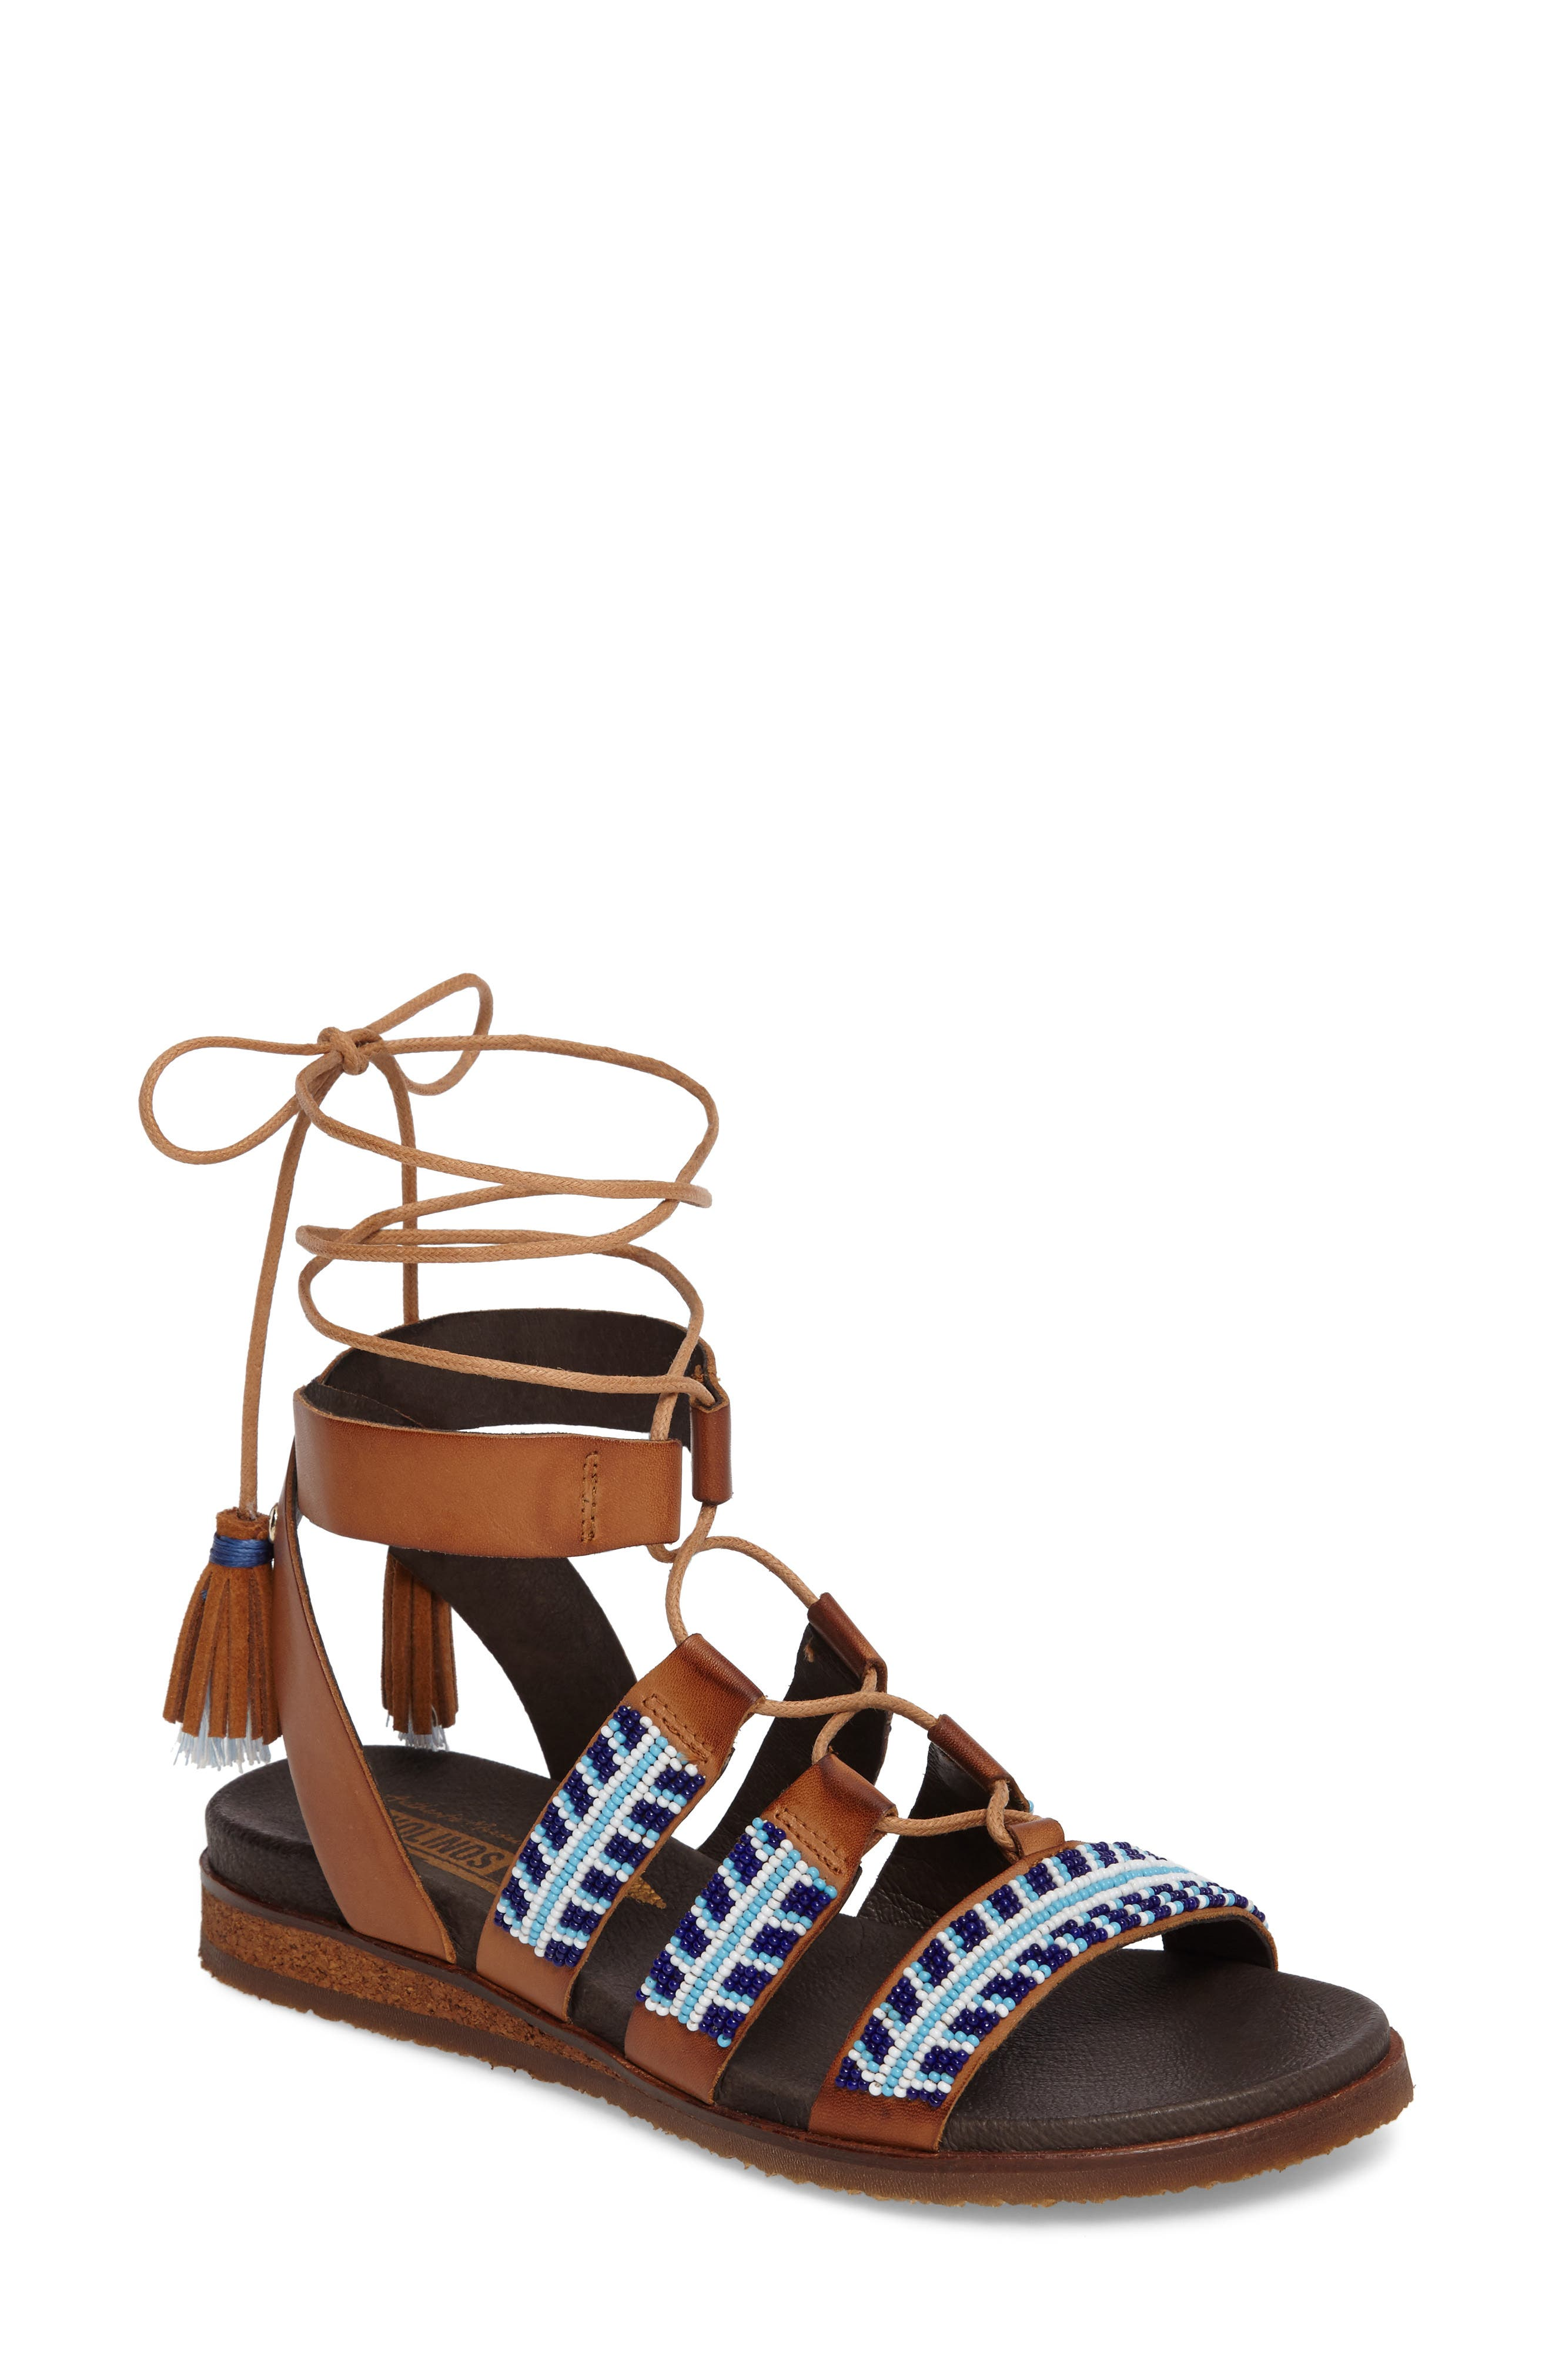 Main Image - PIKOLINOS Antillas Beaded Ghillie Sandal (Women)